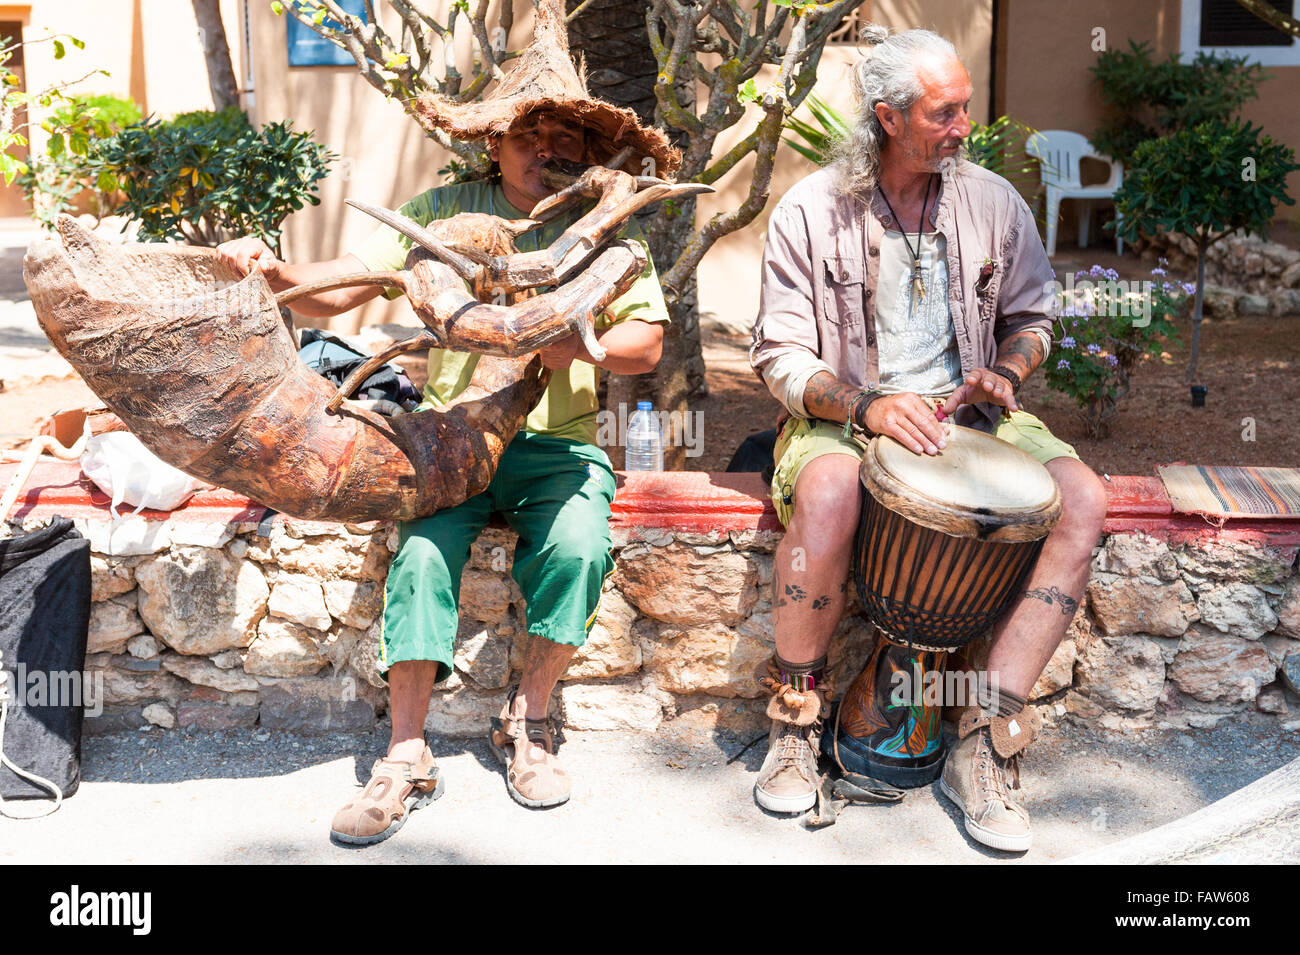 Two musicians entertain tourists at the old market in Ibiza, Balearic Islands,Spain - Stock Image